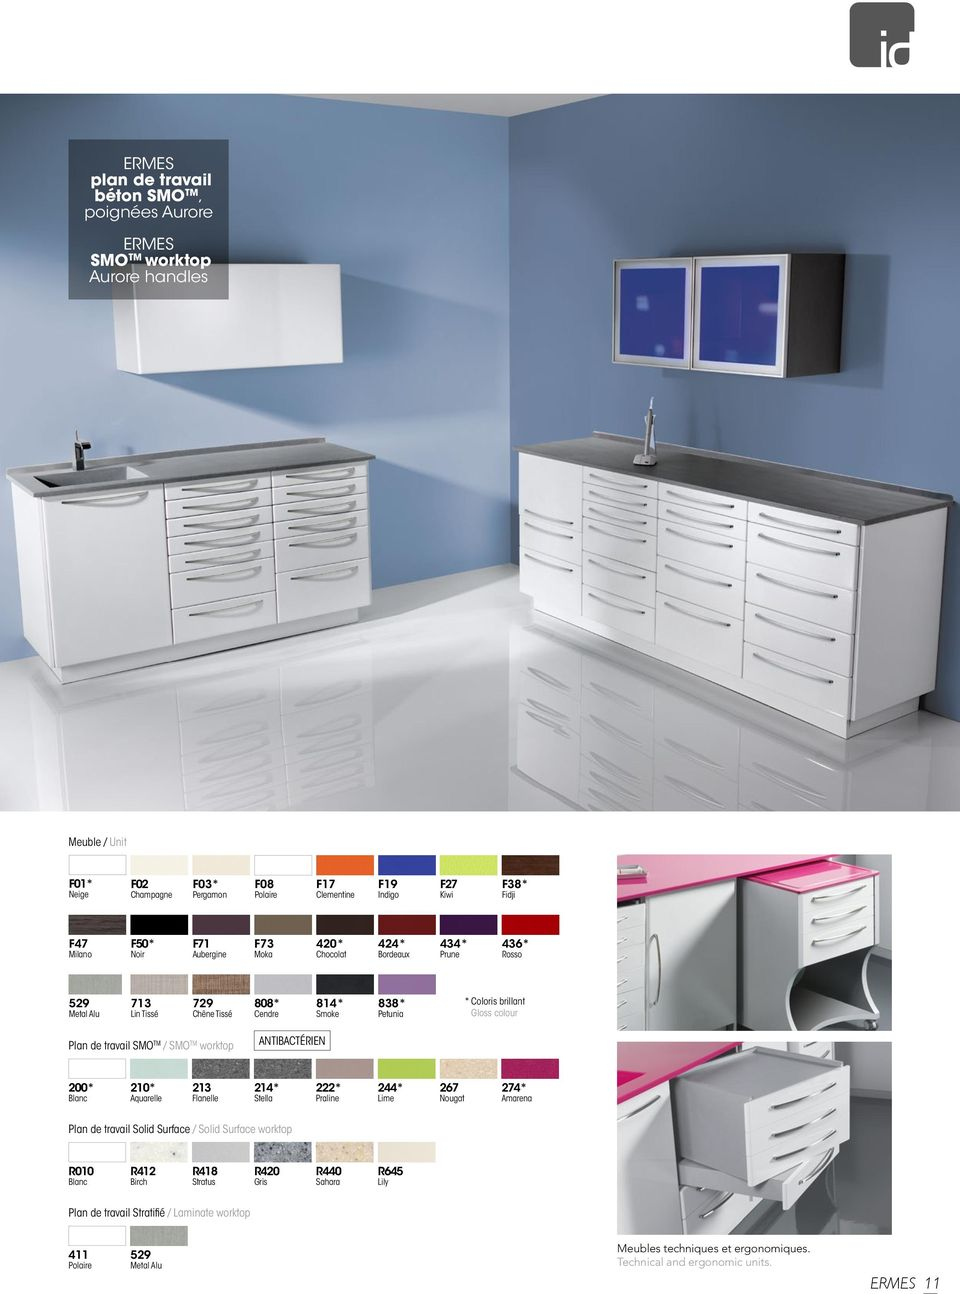 colour Plan de travail SMO TM / SMO TM worktop ANTIBActérien 200* Blanc 210* Aquarelle 213 Flanelle 214* Stella 222* Praline 244* Lime 267 Nougat 274* Amarena Plan de travail Solid Surface / Solid